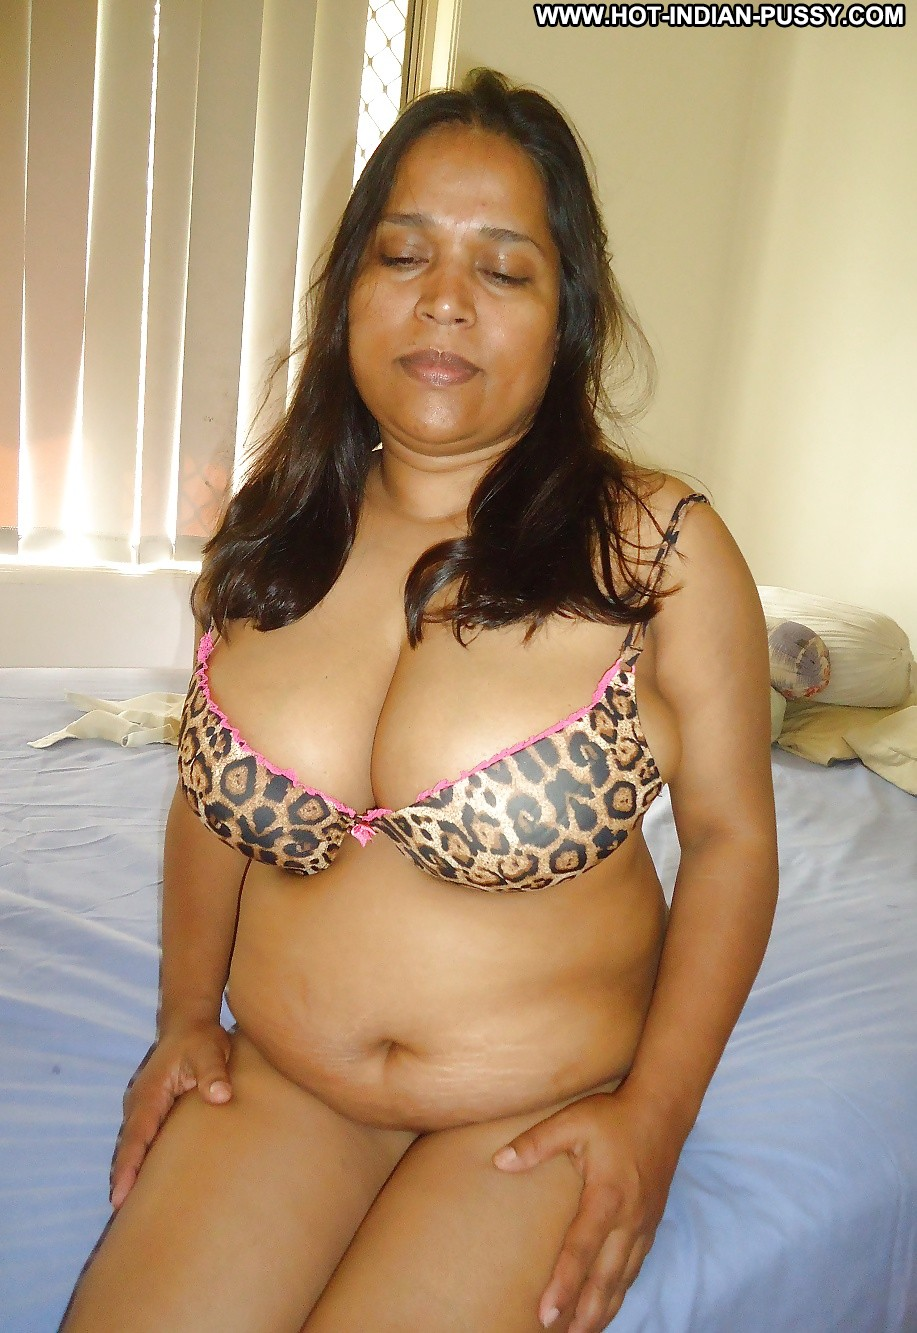 Indian Tube XXX Desi Porn Videos Hot Women Sex from India